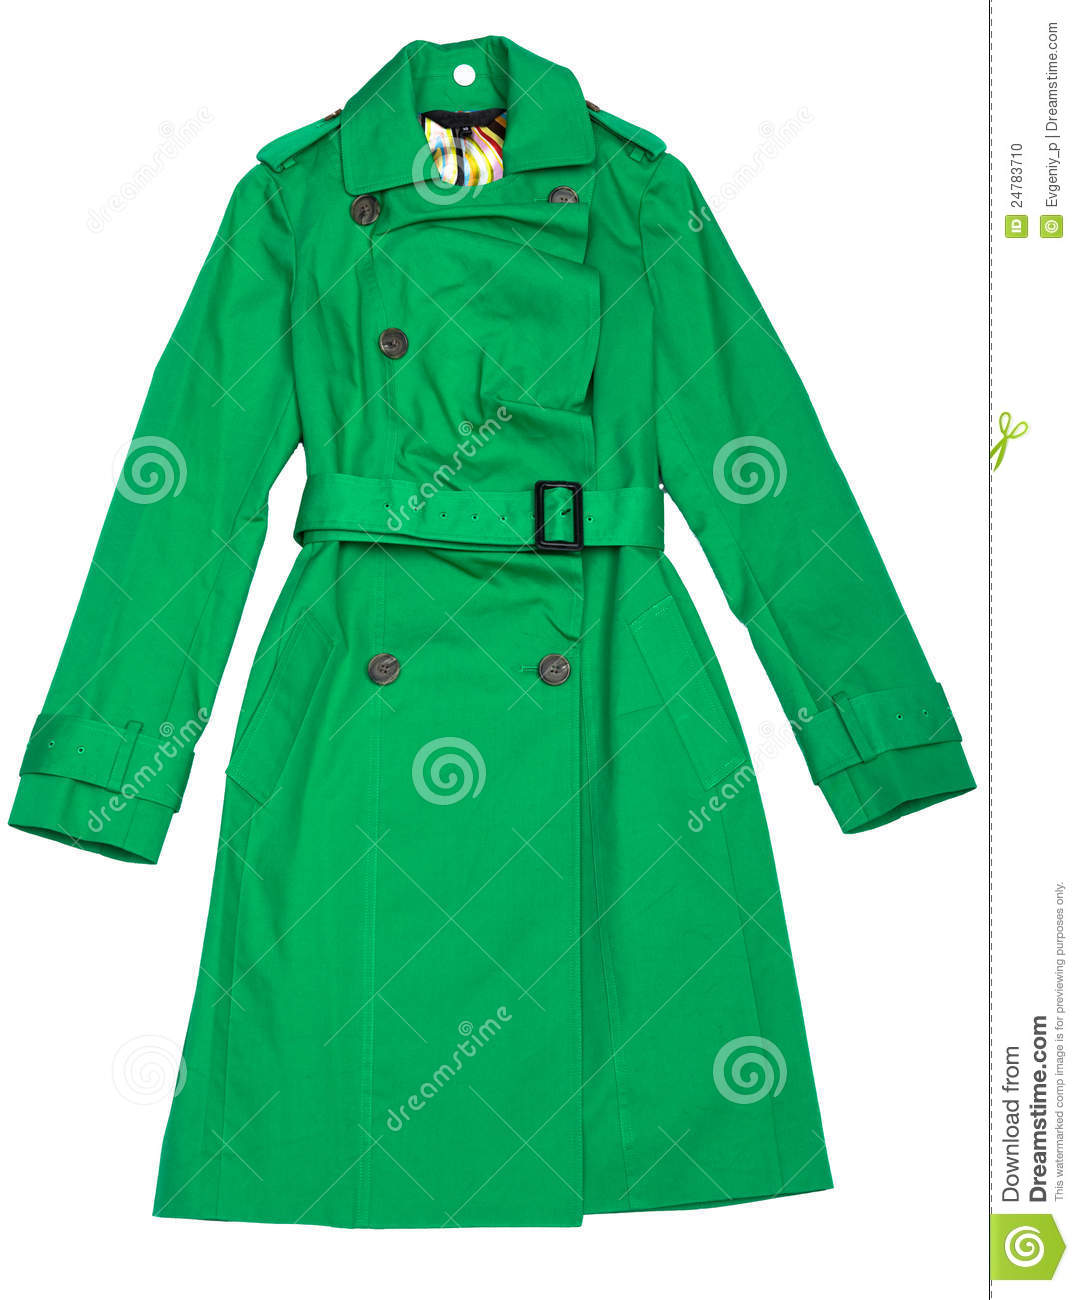 Green Women's Raincoat Stock Photo - Image: 24783710